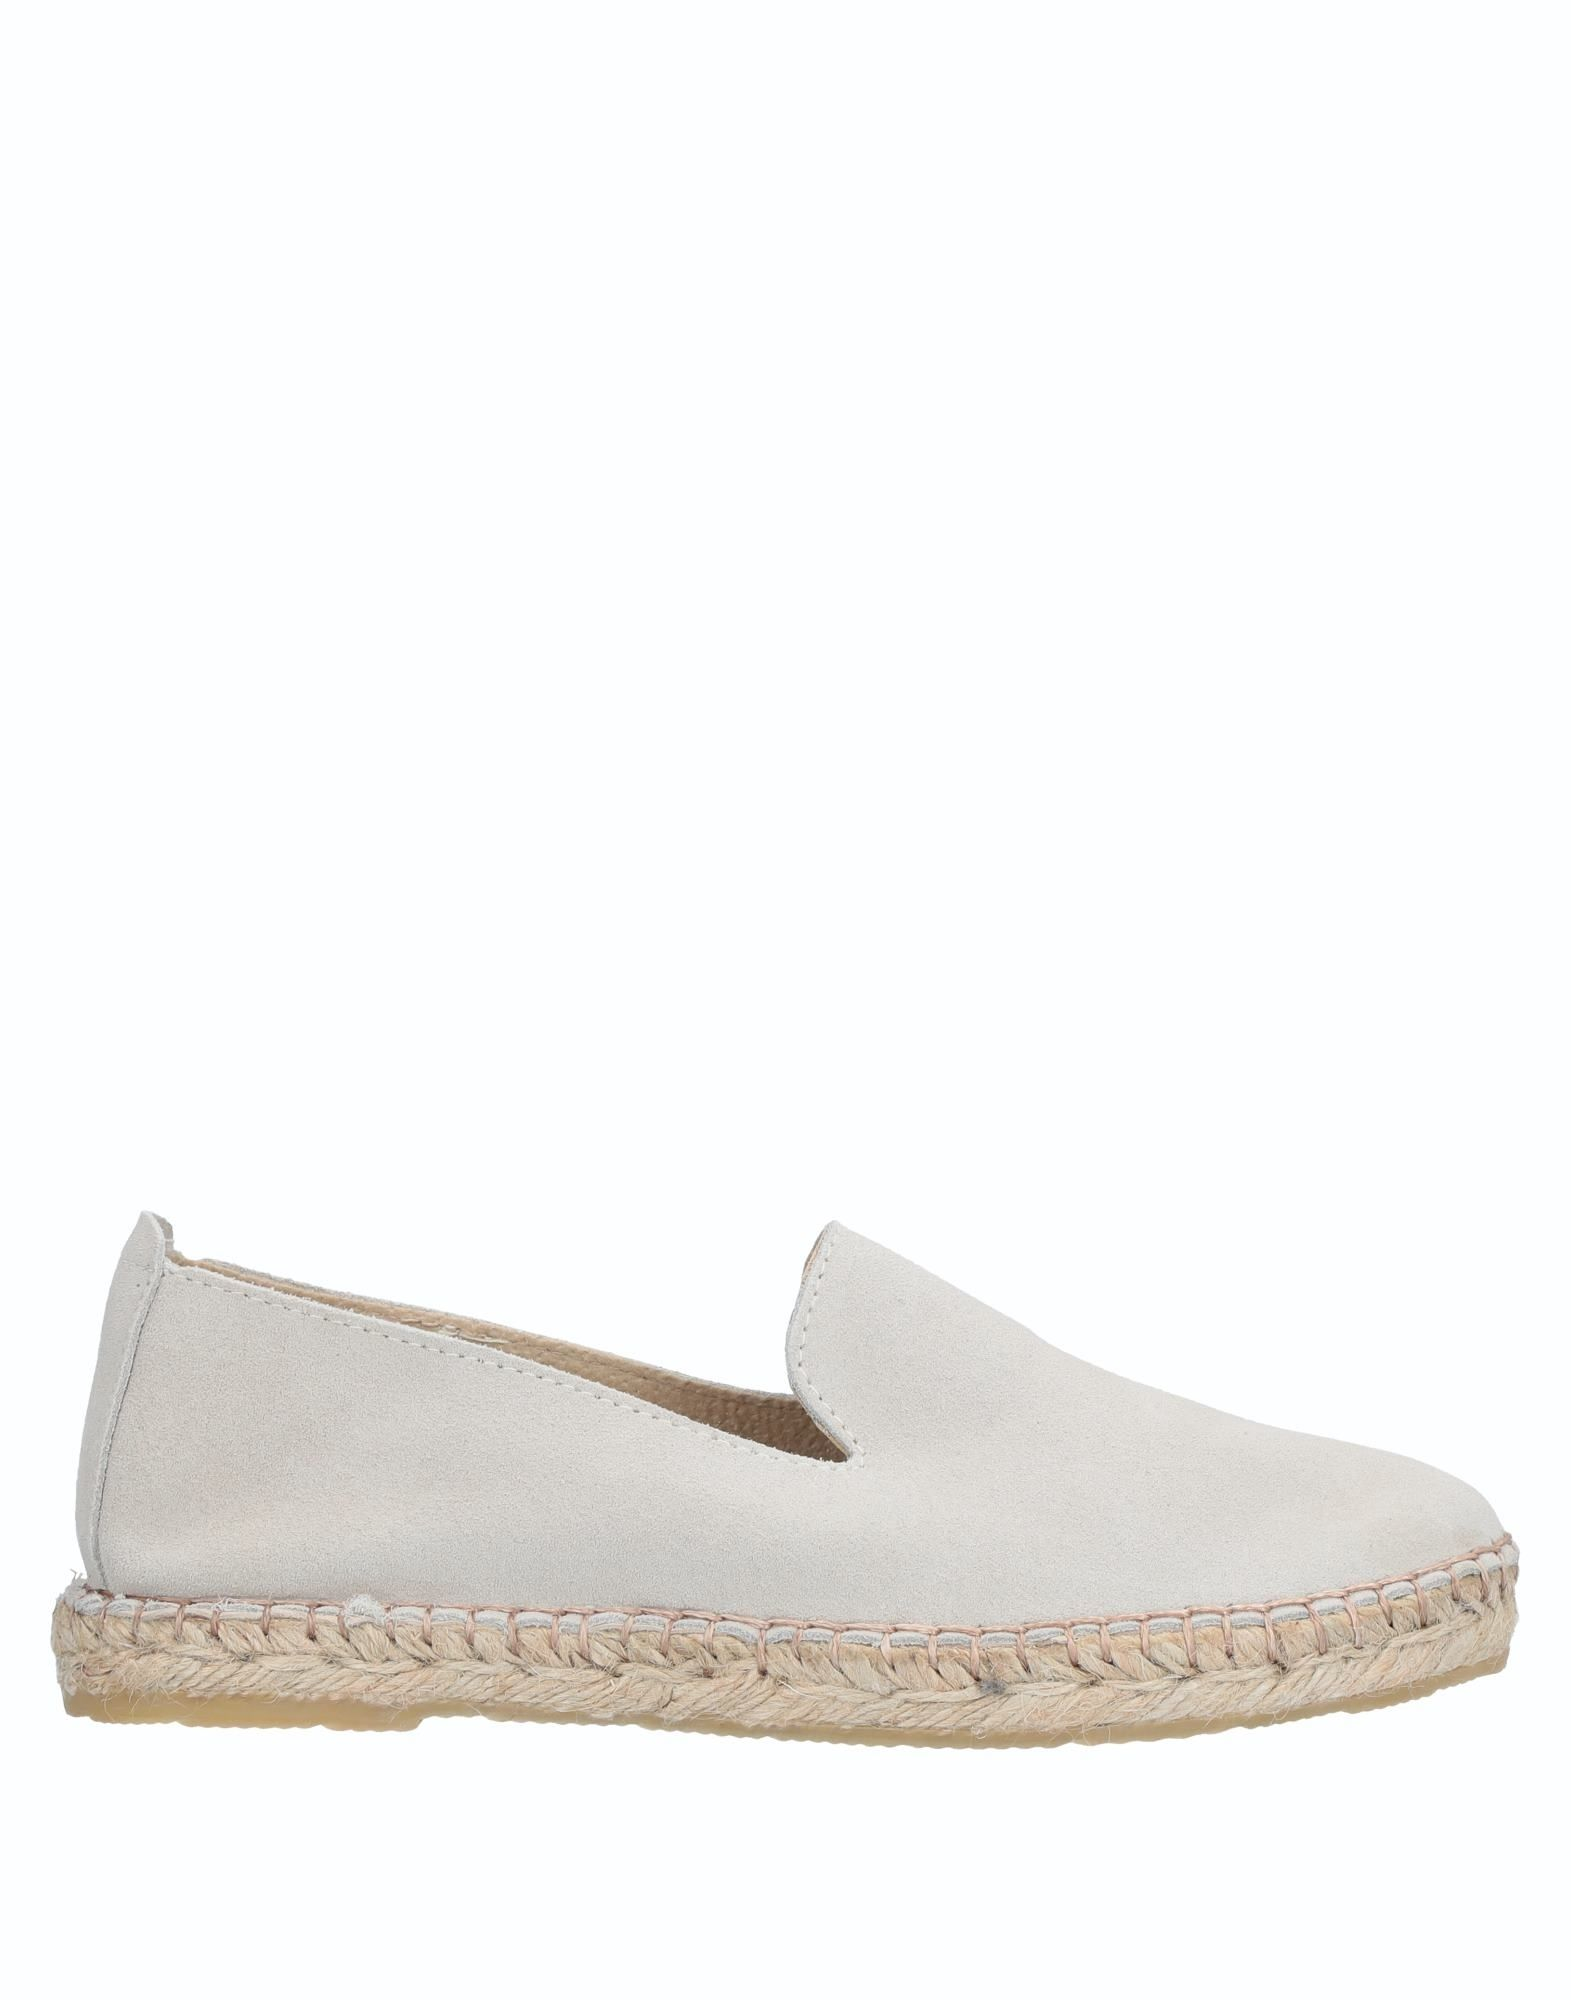 MDK Espadrilles in Light Grey